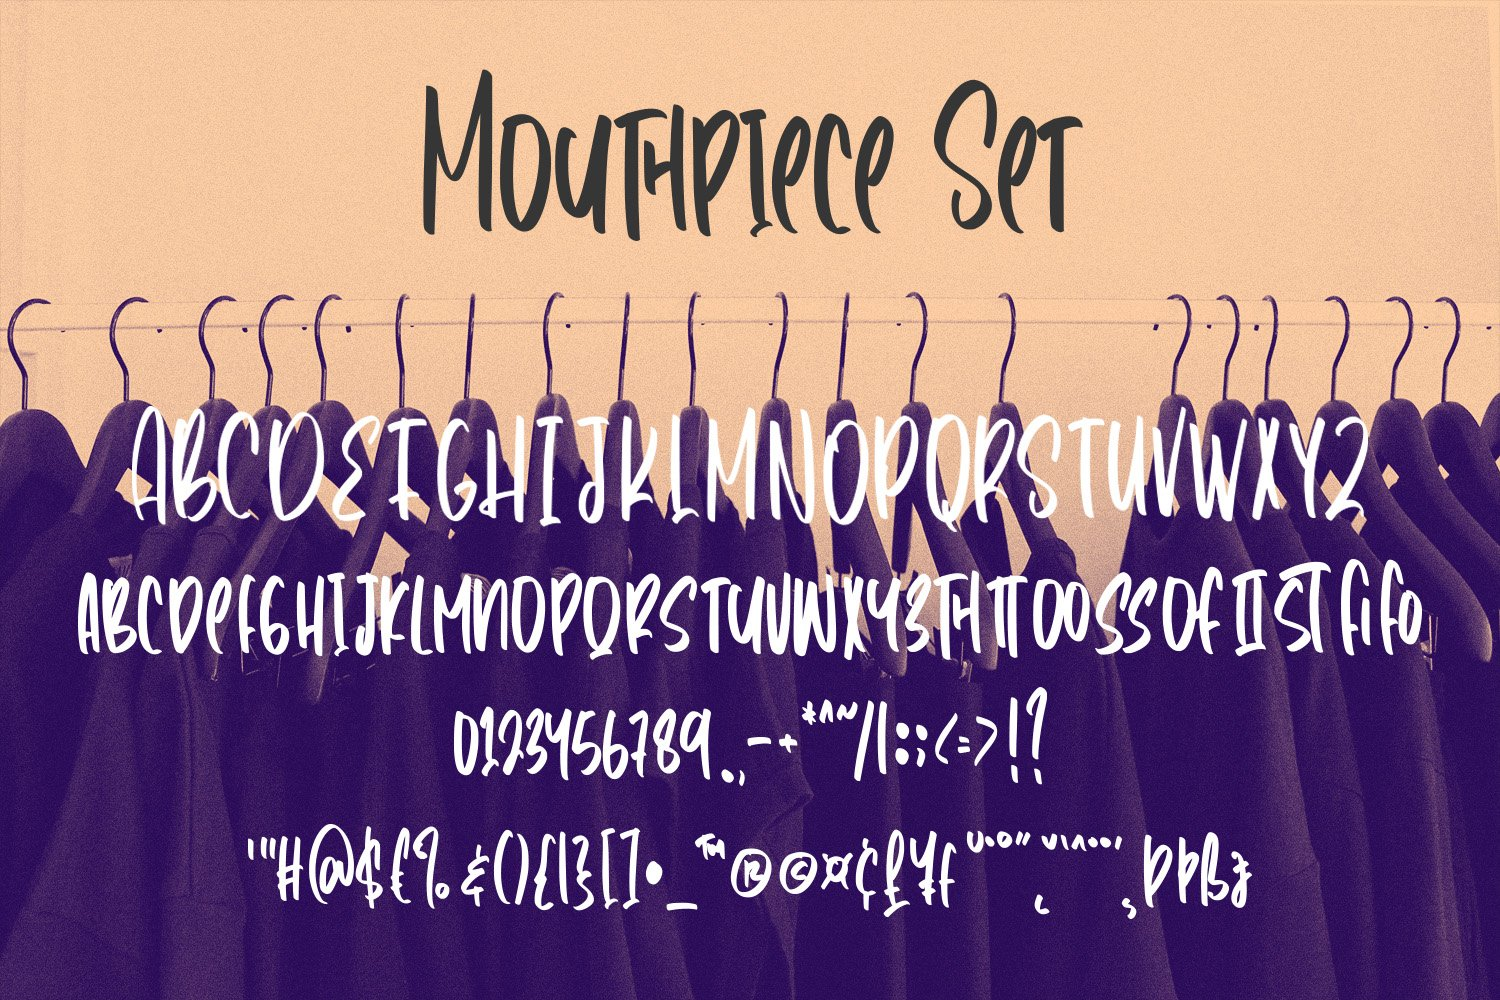 Mouthpiece - Handwritten Font example image 5